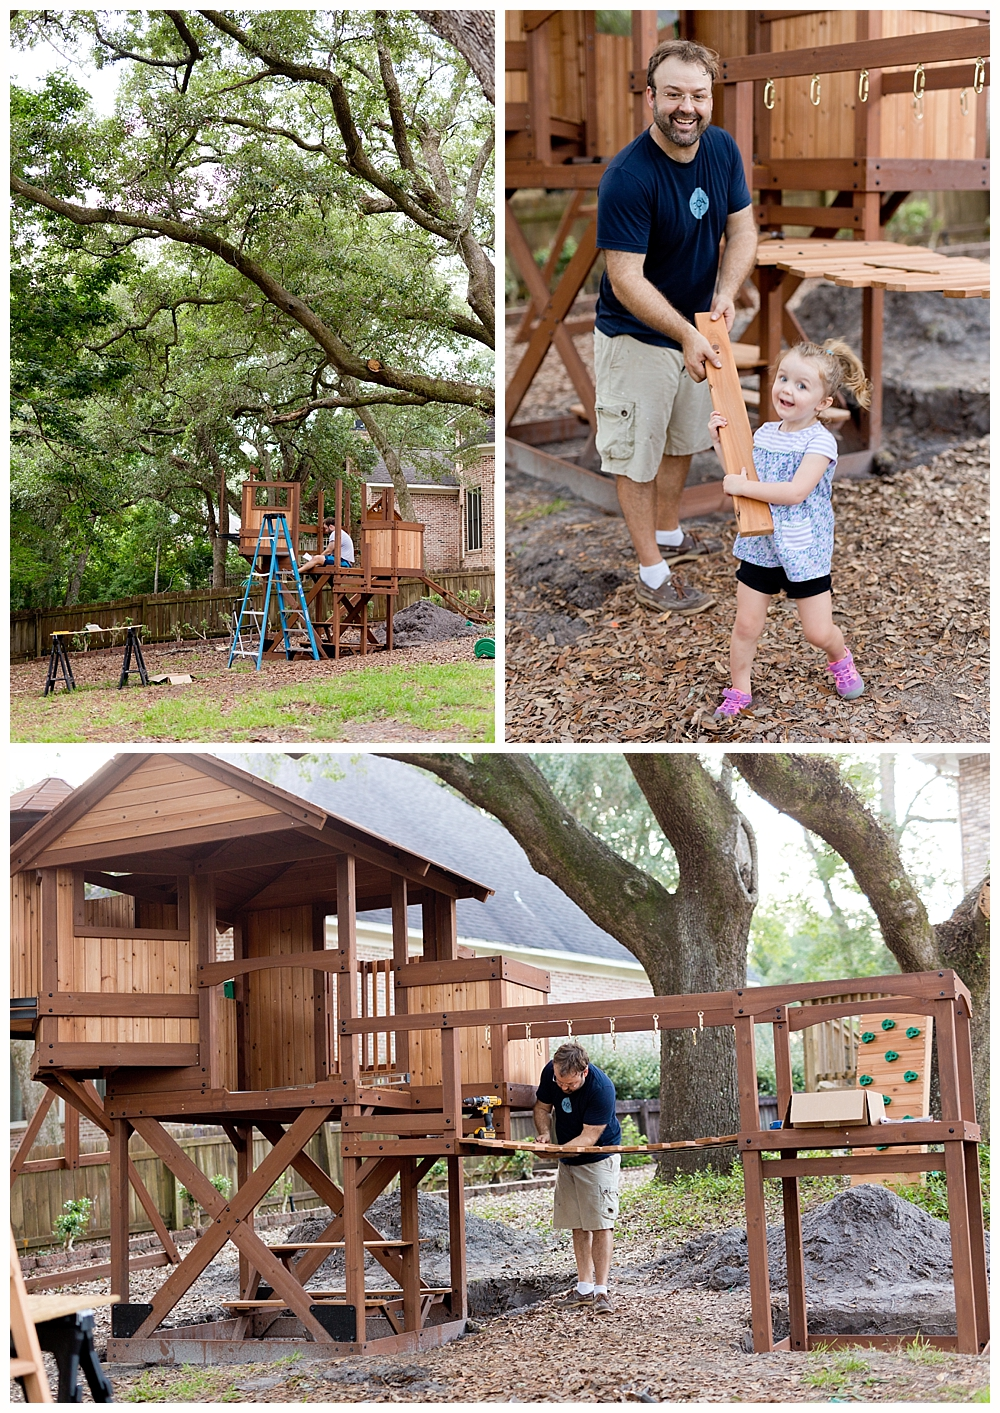 dad and daughter building elaborate backyard play set